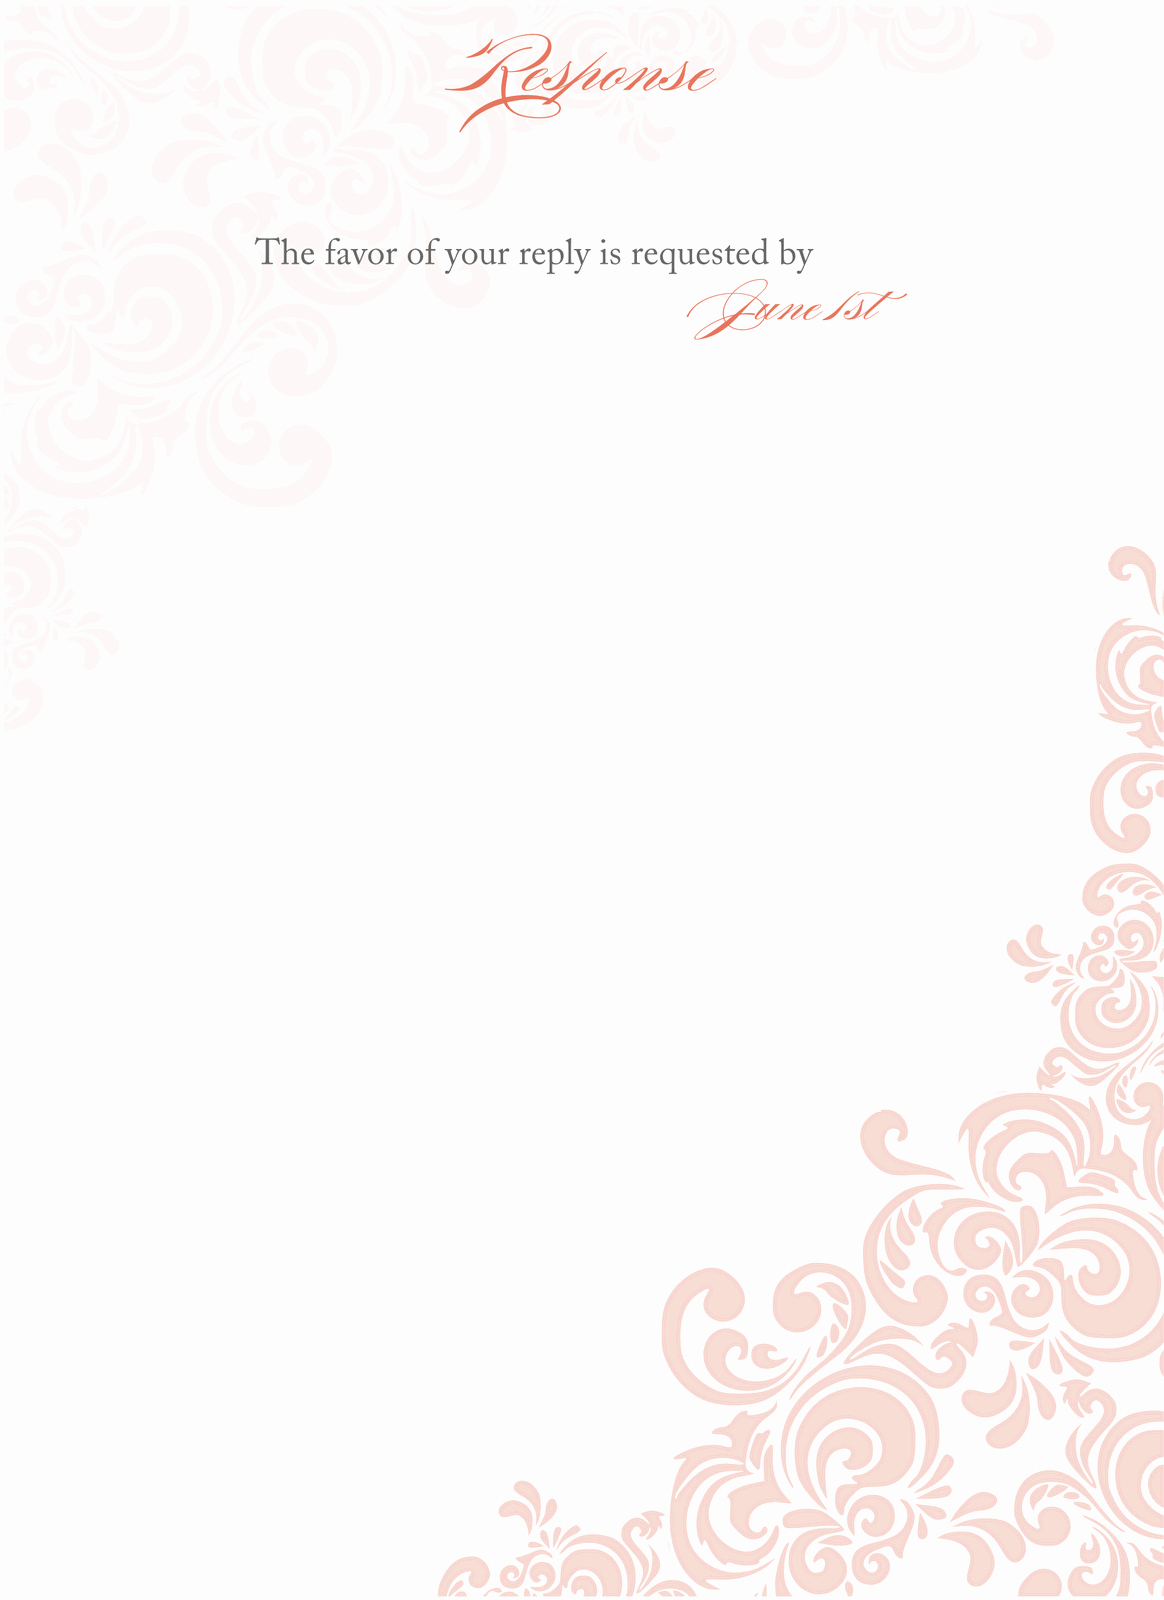 Free Blank Invitation Templates Elegant Floral Blank Wedding Invitation Templates